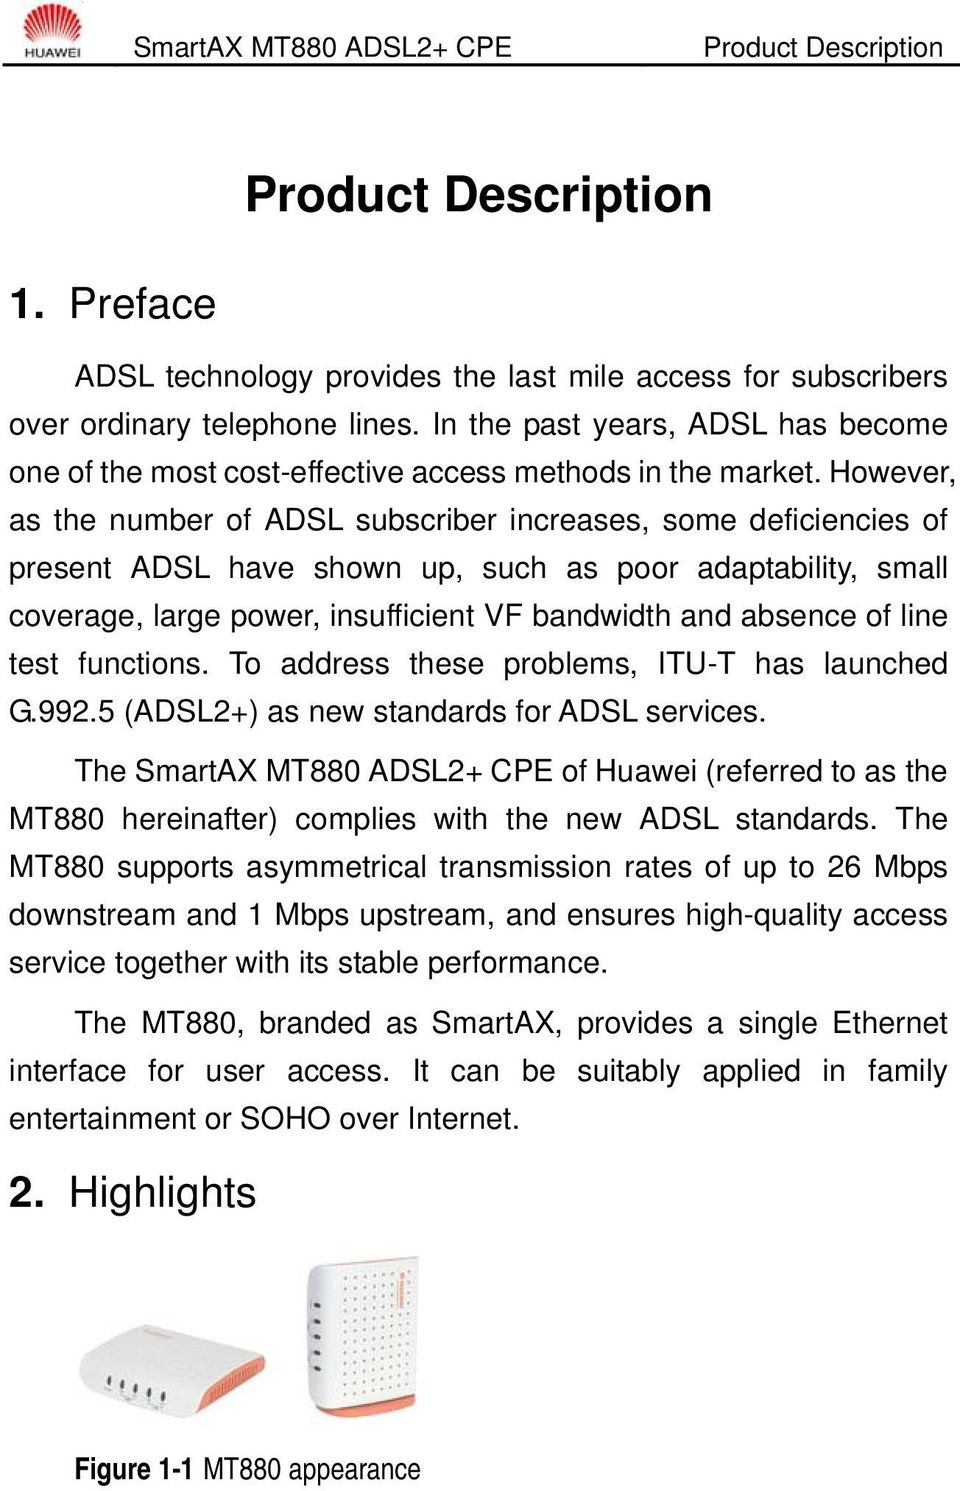 However, as the number of ADSL subscriber increases, some deficiencies of present ADSL have shown up, such as poor adaptability, small coverage, large power, insufficient VF bandwidth and absence of